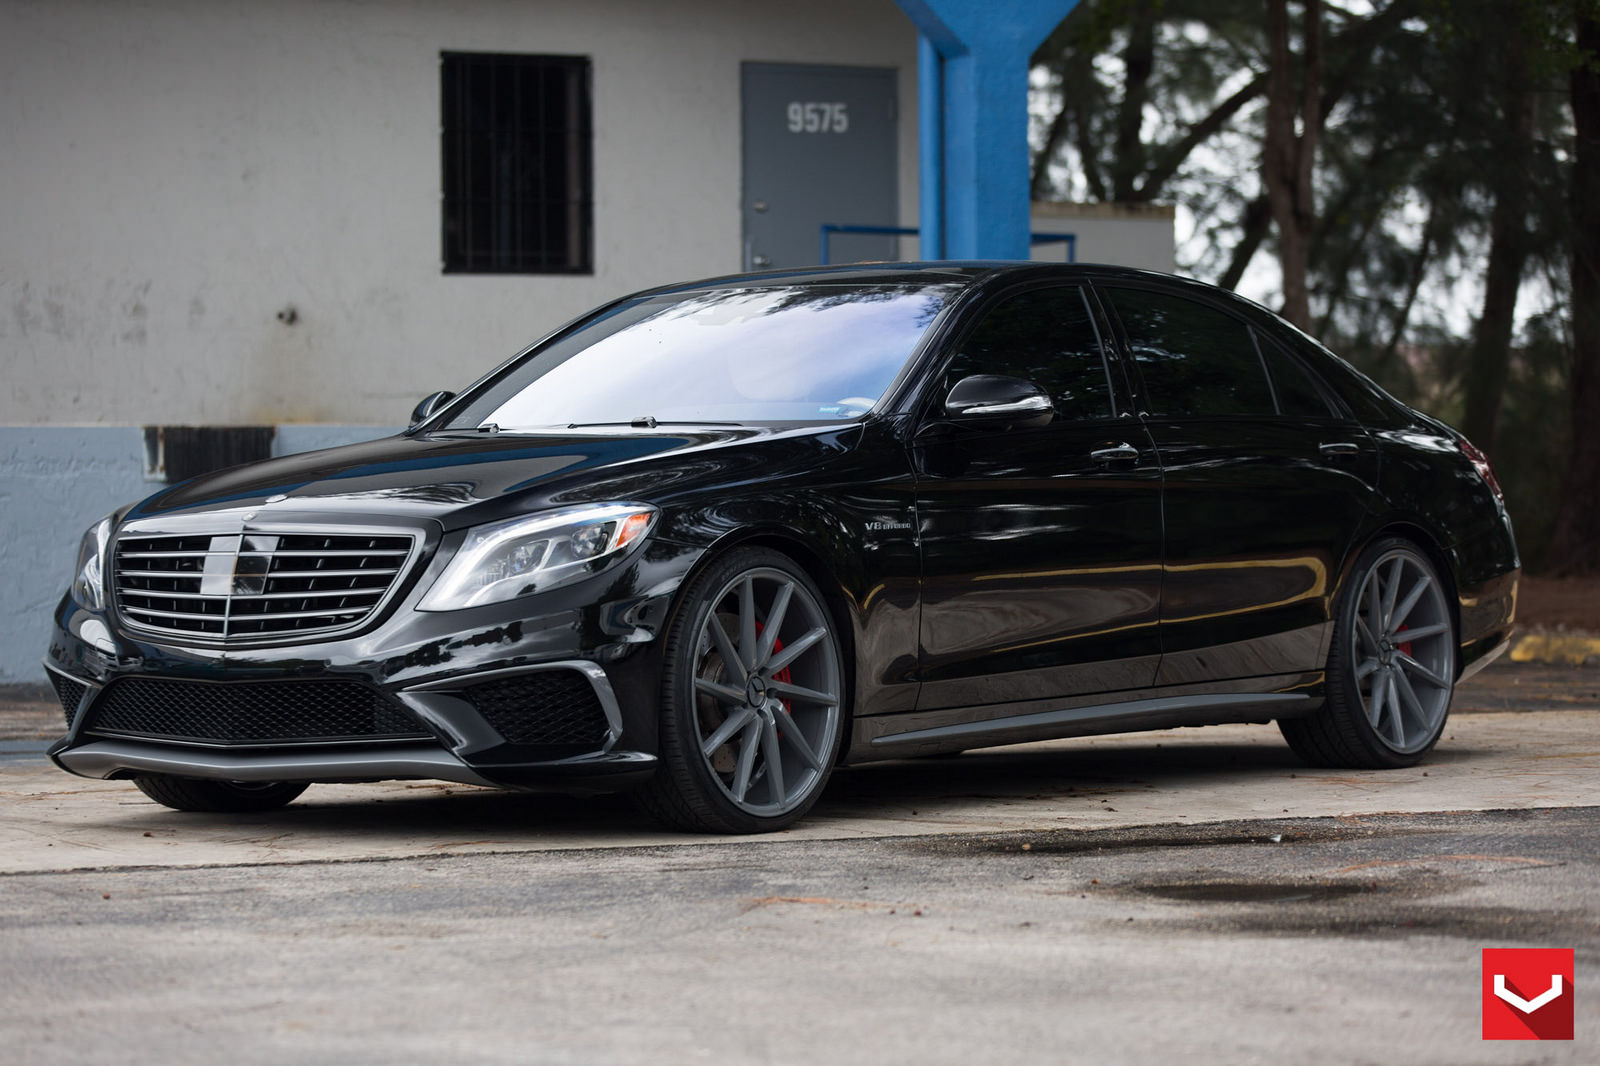 Mercedes benz w222 s63 amg on vossen cvt wheels benztuning for Mercedes benz wheel